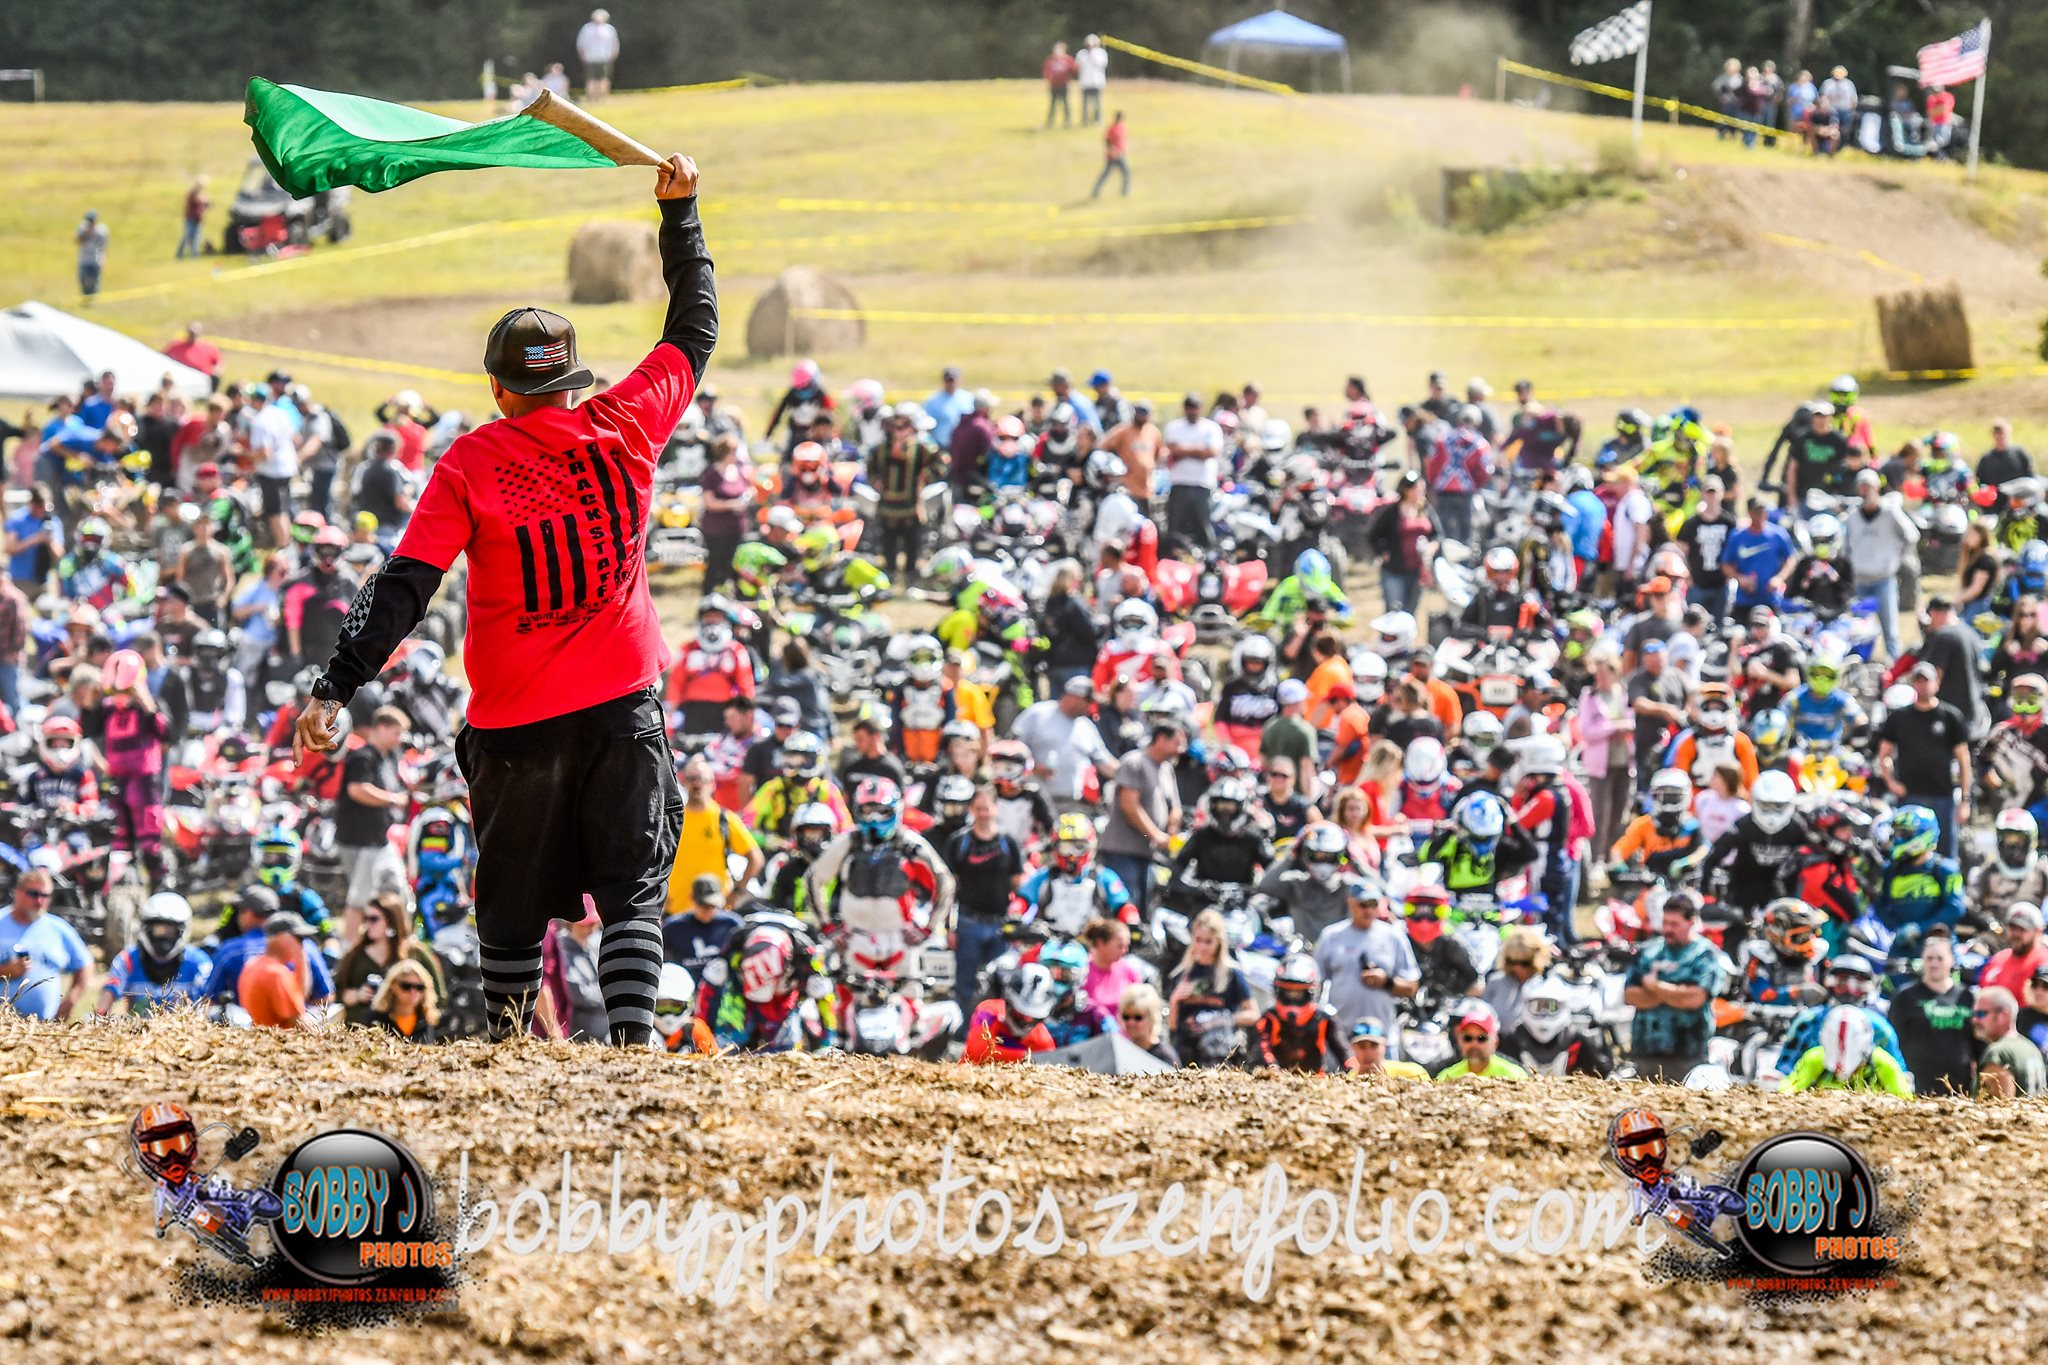 picture of another harescramble event put on by Mark Potter and his crew. Picture shows Mark waving a flag in front of a large crowd of people on a race track.